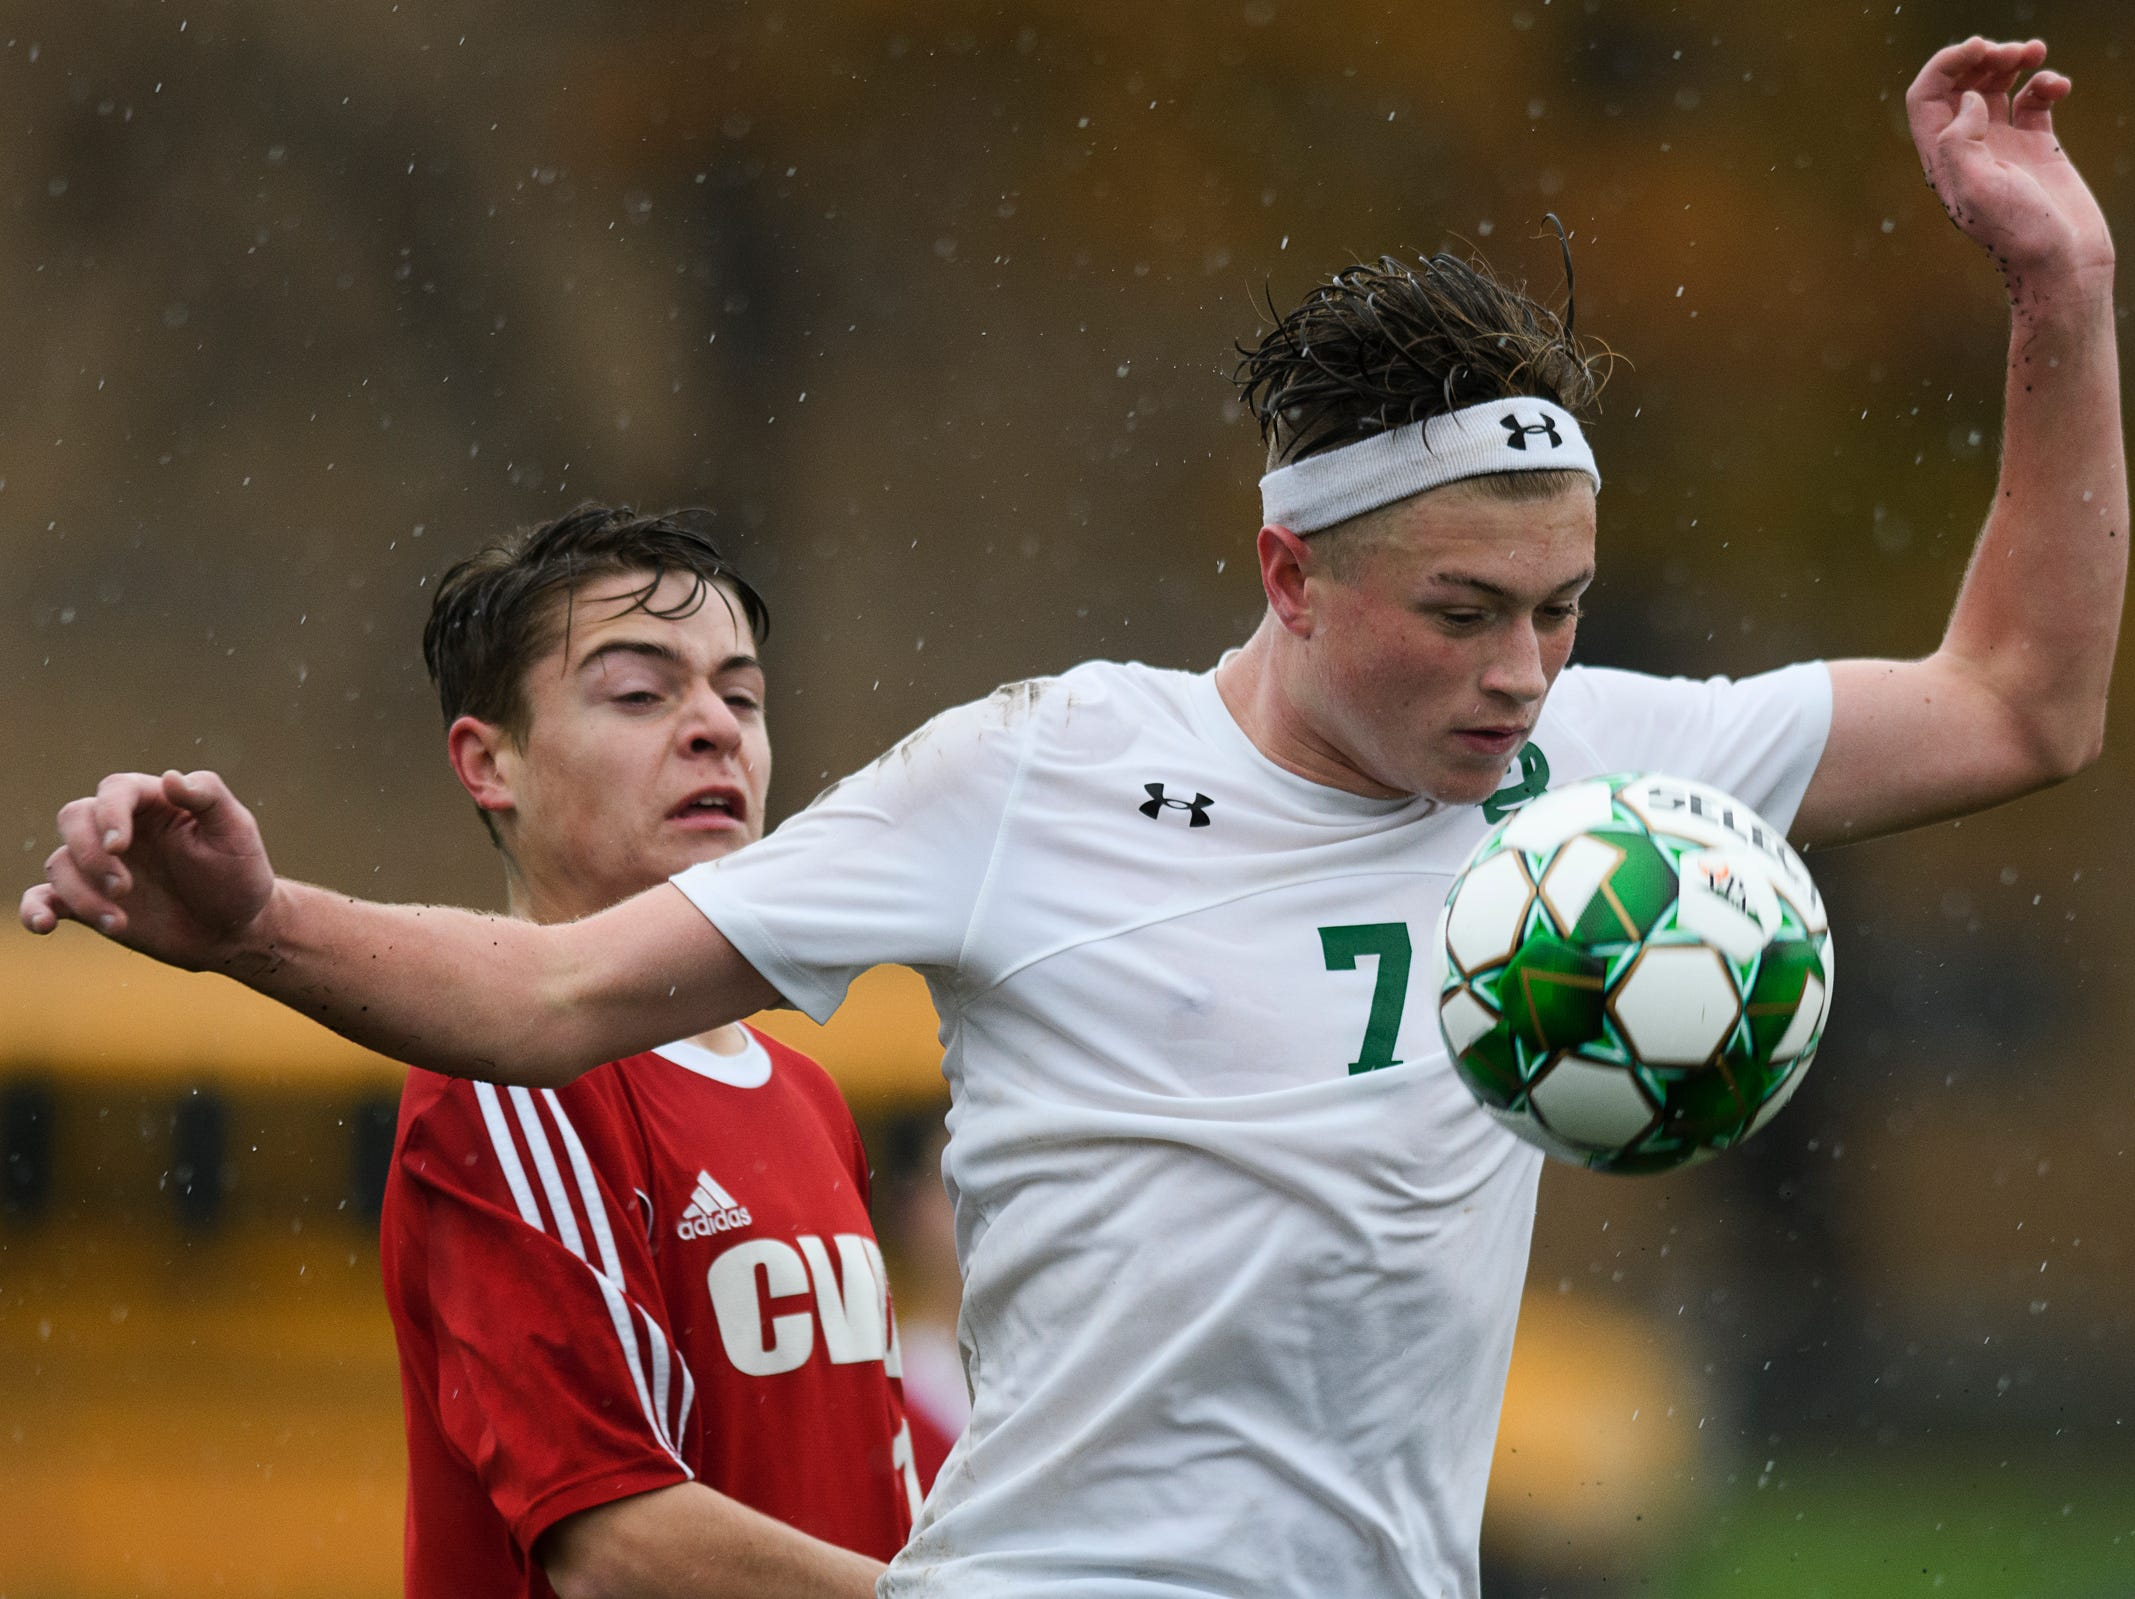 St. Johnsbury's Konrad Tillman (7) plays the ball in front of CVU's Caleb Martin during the Division I boys soccer championship game between the St. Johnsbury Hilltoppers and the Champlain Valley Union Redhawks at Buck Hard Field on Saturday morning November 3, 2018 in Burlington.